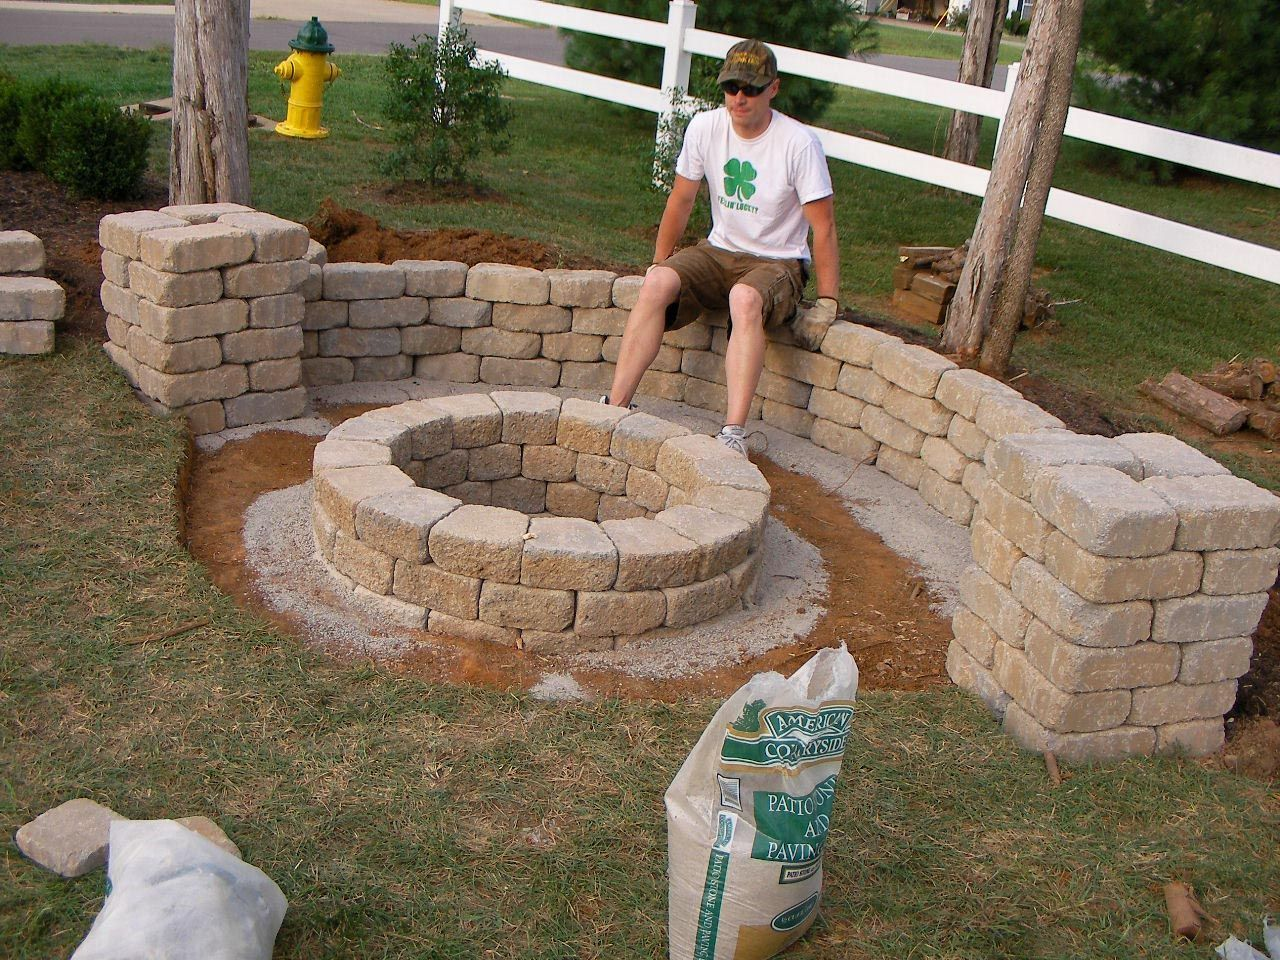 27 easy-to-build diy firepit ideas to improve your backyard | fire